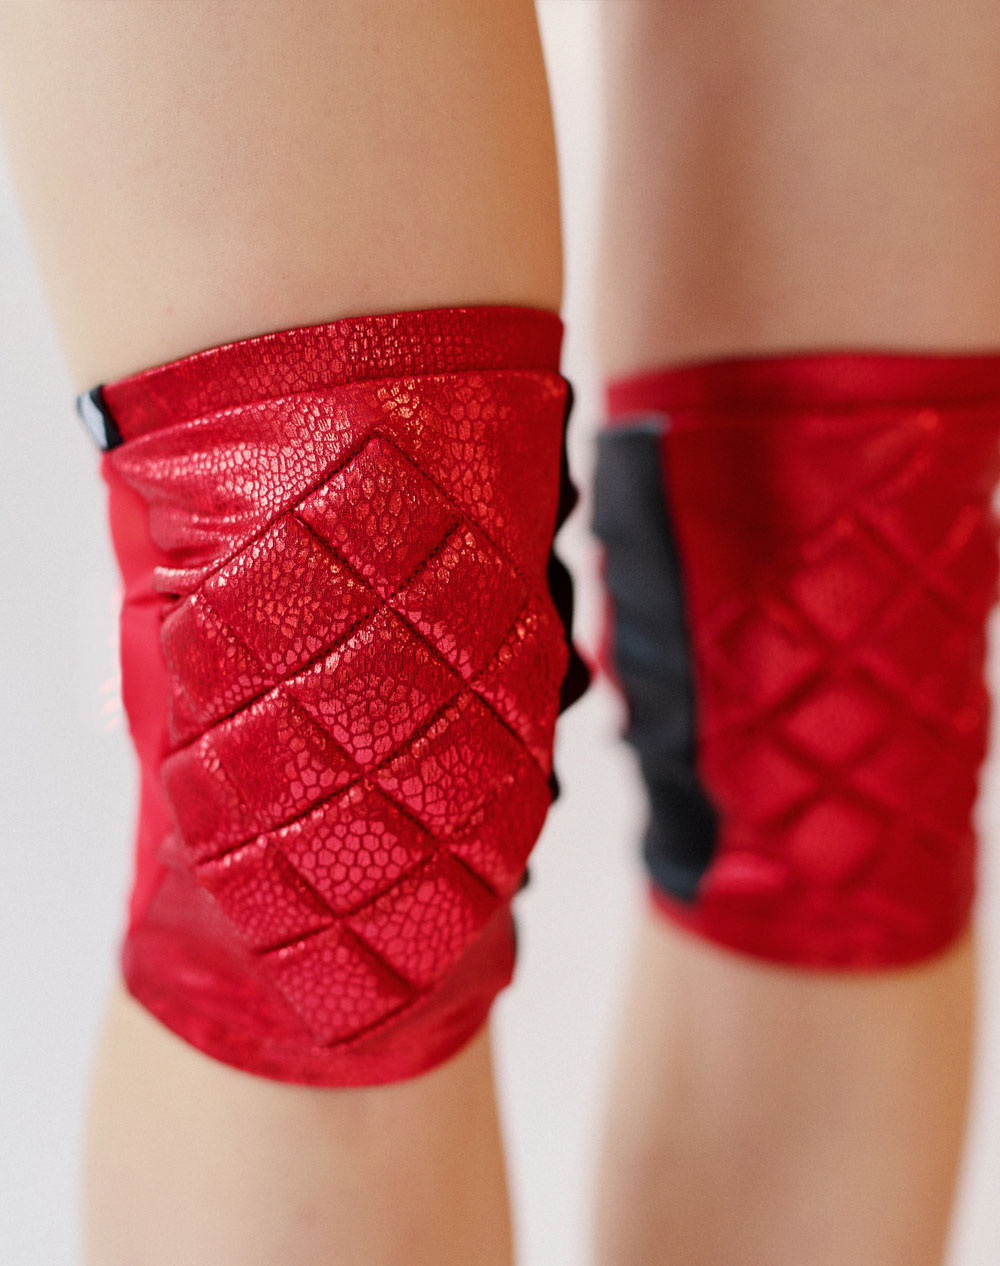 Knee Pads - Shiny Red